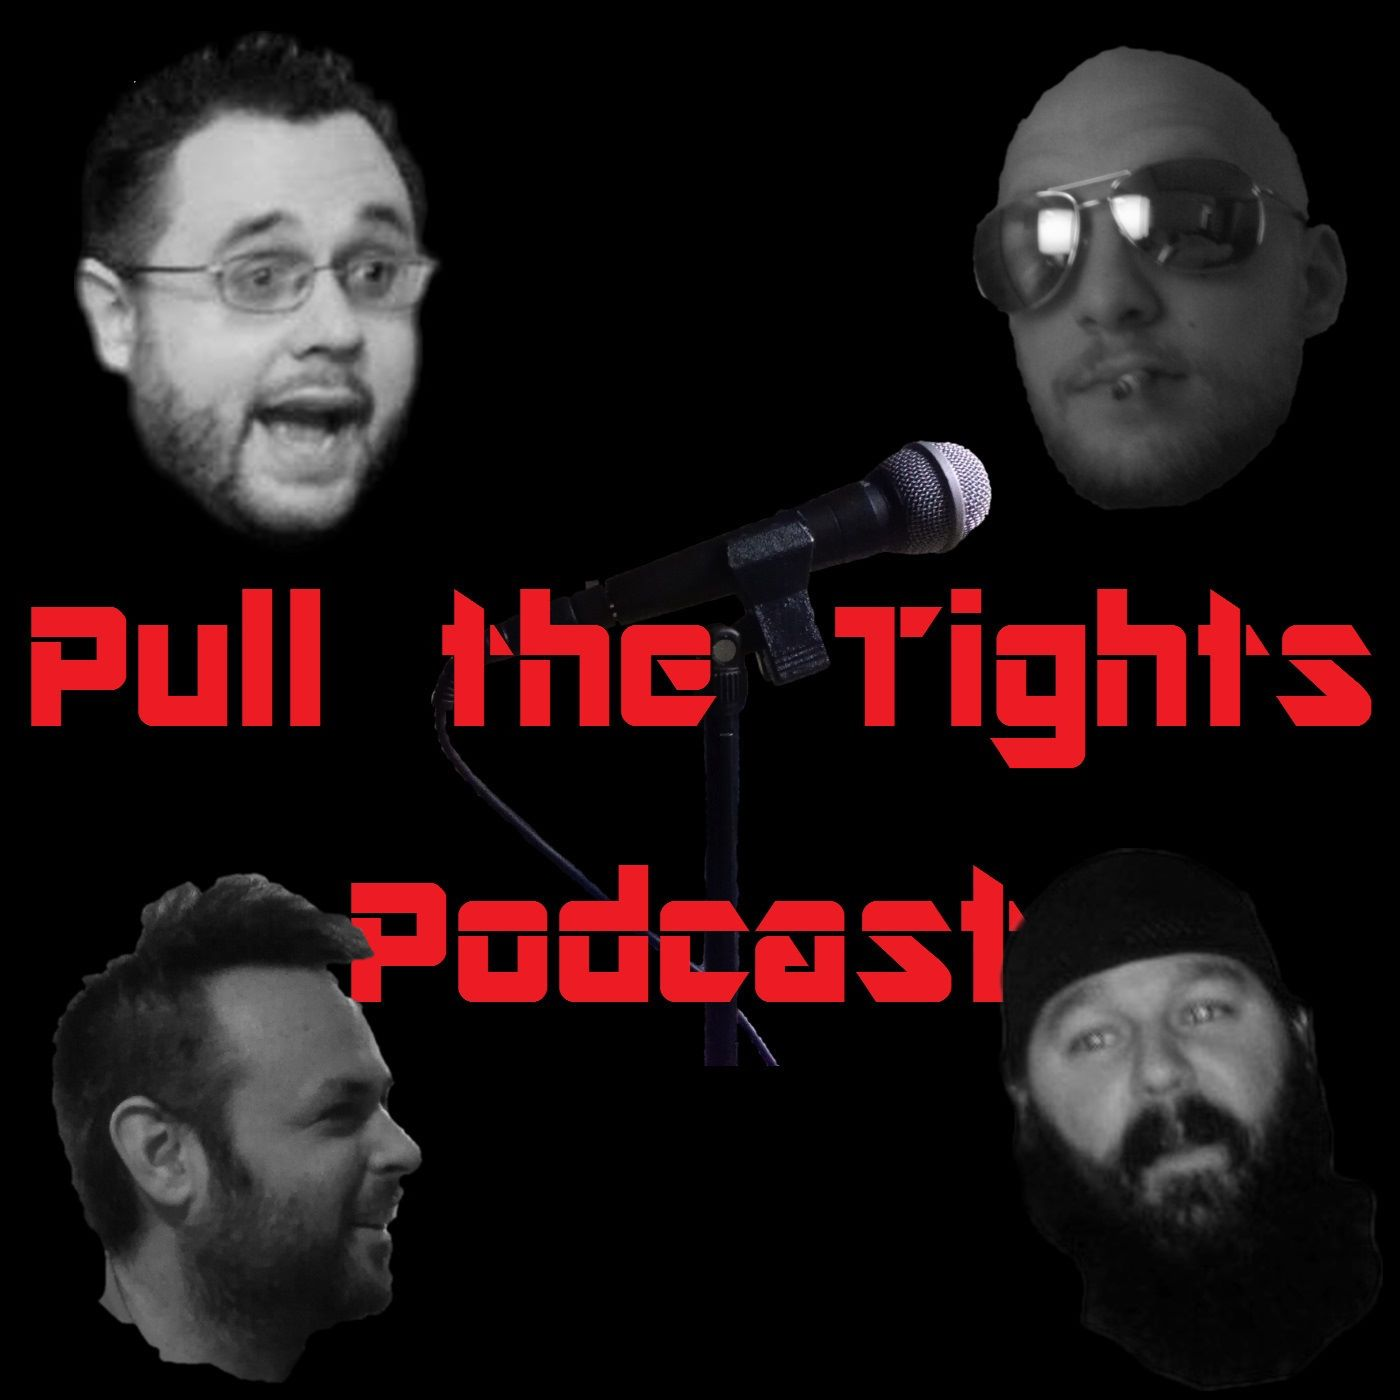 Pull the Tights Podcast